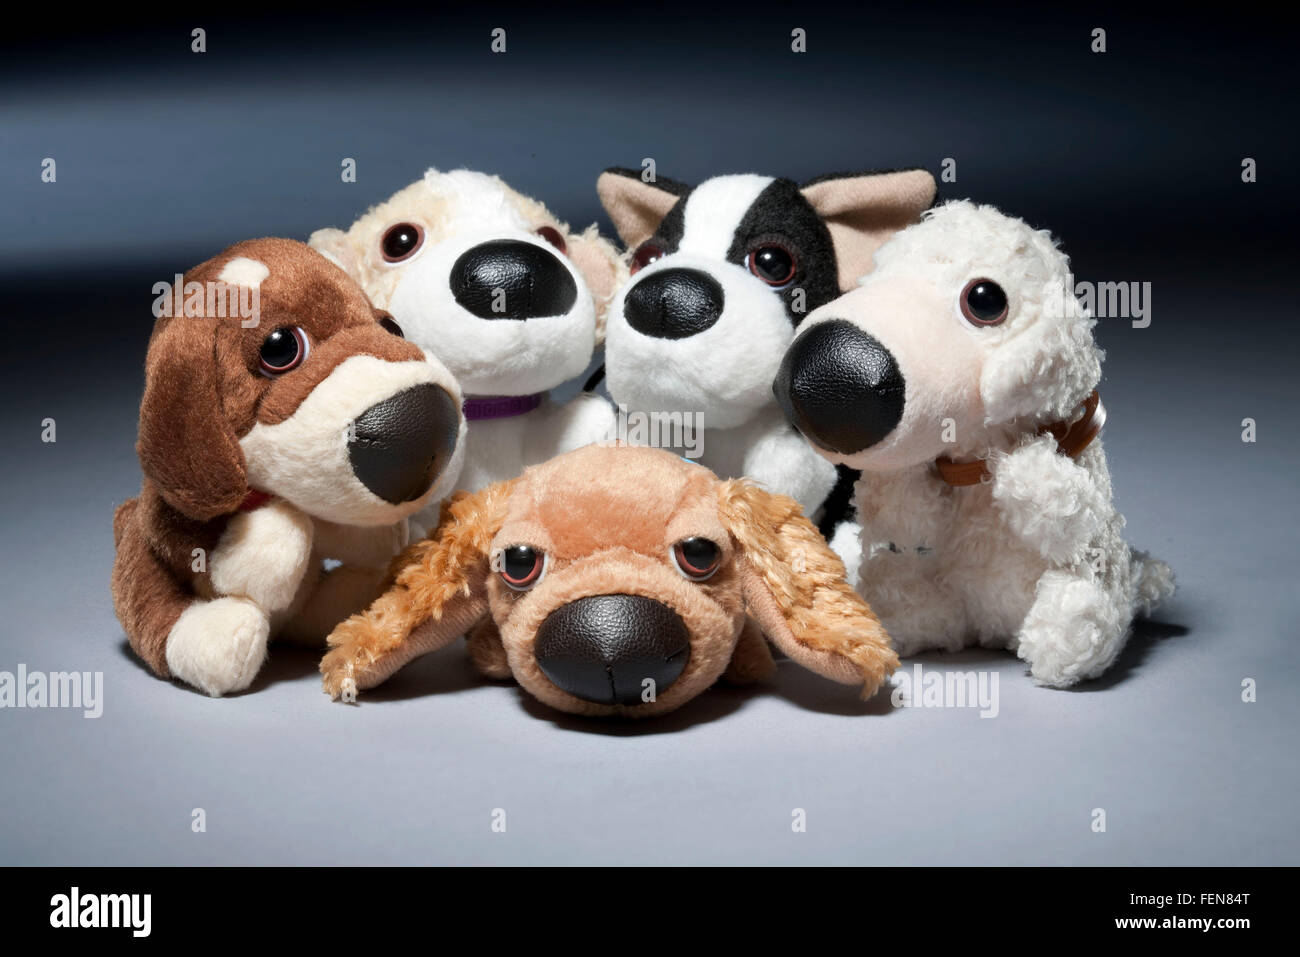 Mcdonalds happy meal soft toy dogs on grey background - Stock Image